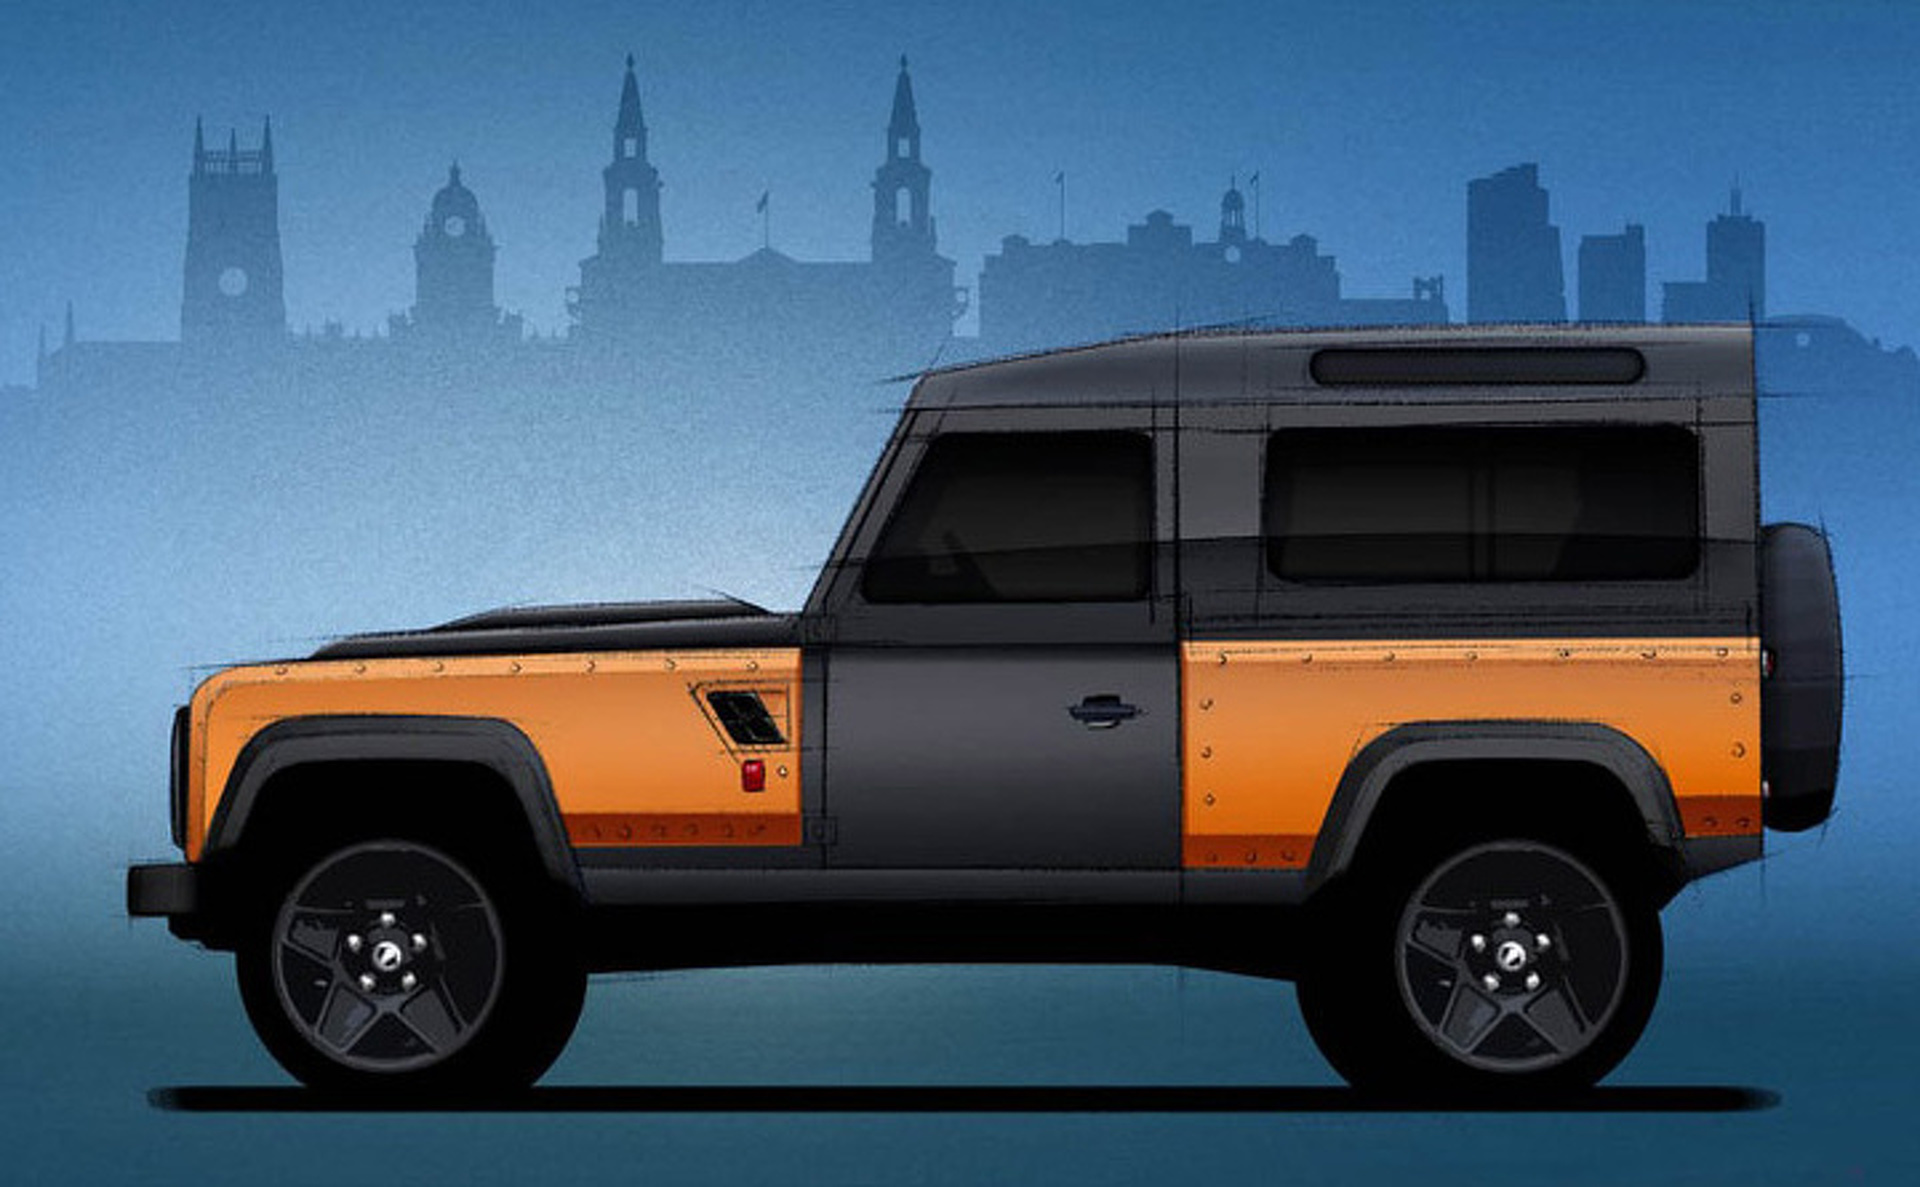 Ant-Kahn Set to Build Epic, Retro-Inspired Vehicles